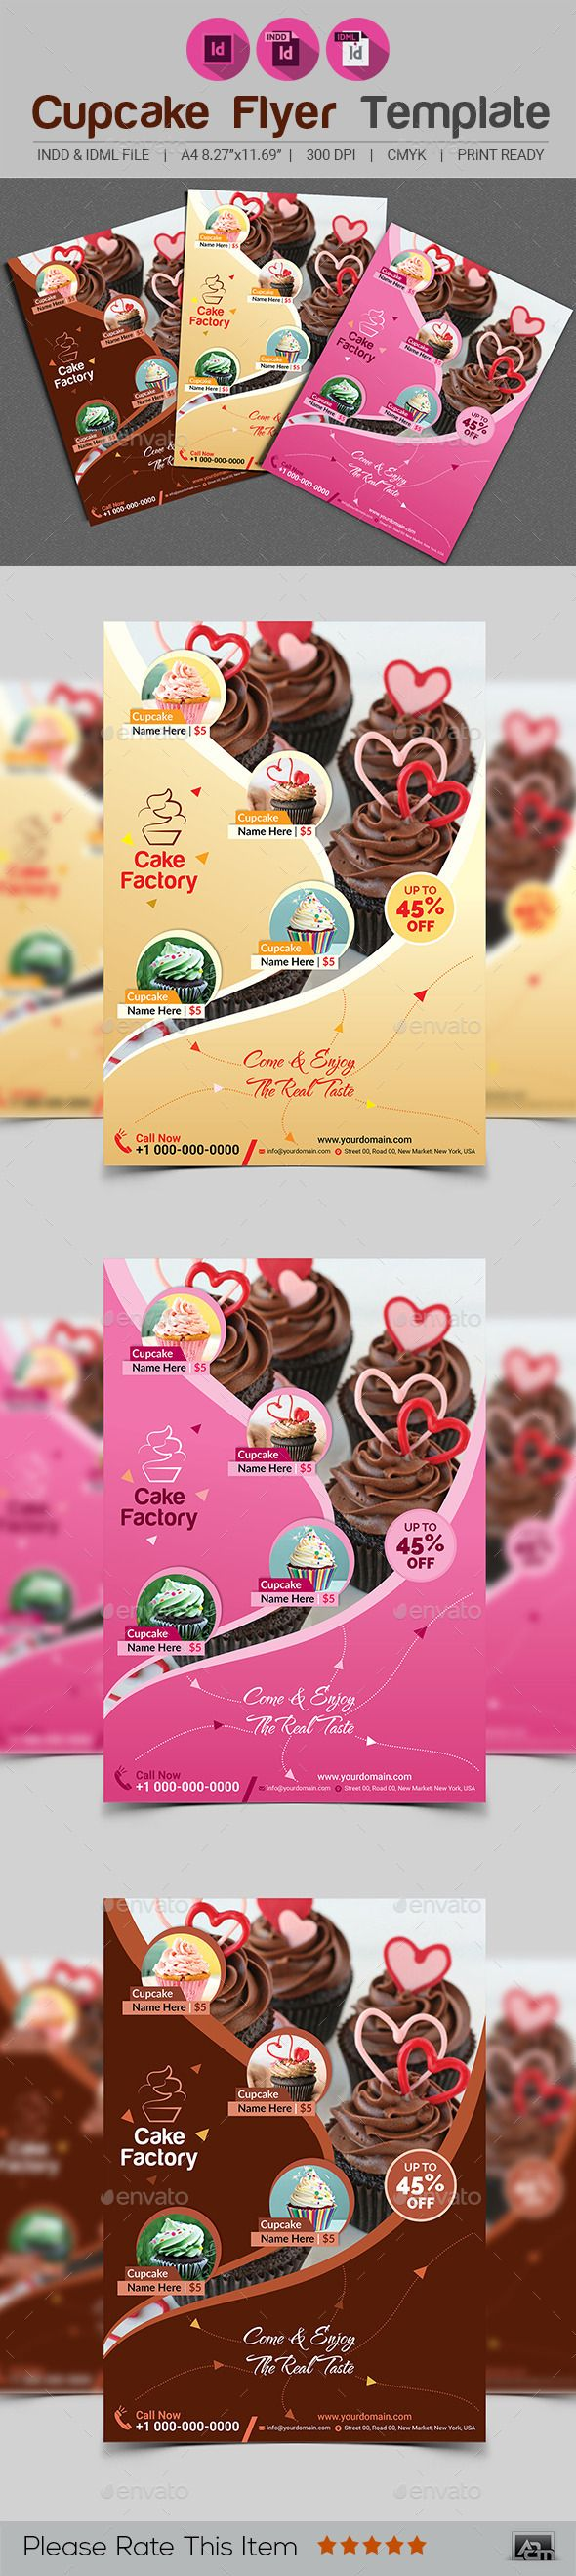 Cupcake Flyer Template V2 19 best Restaurant